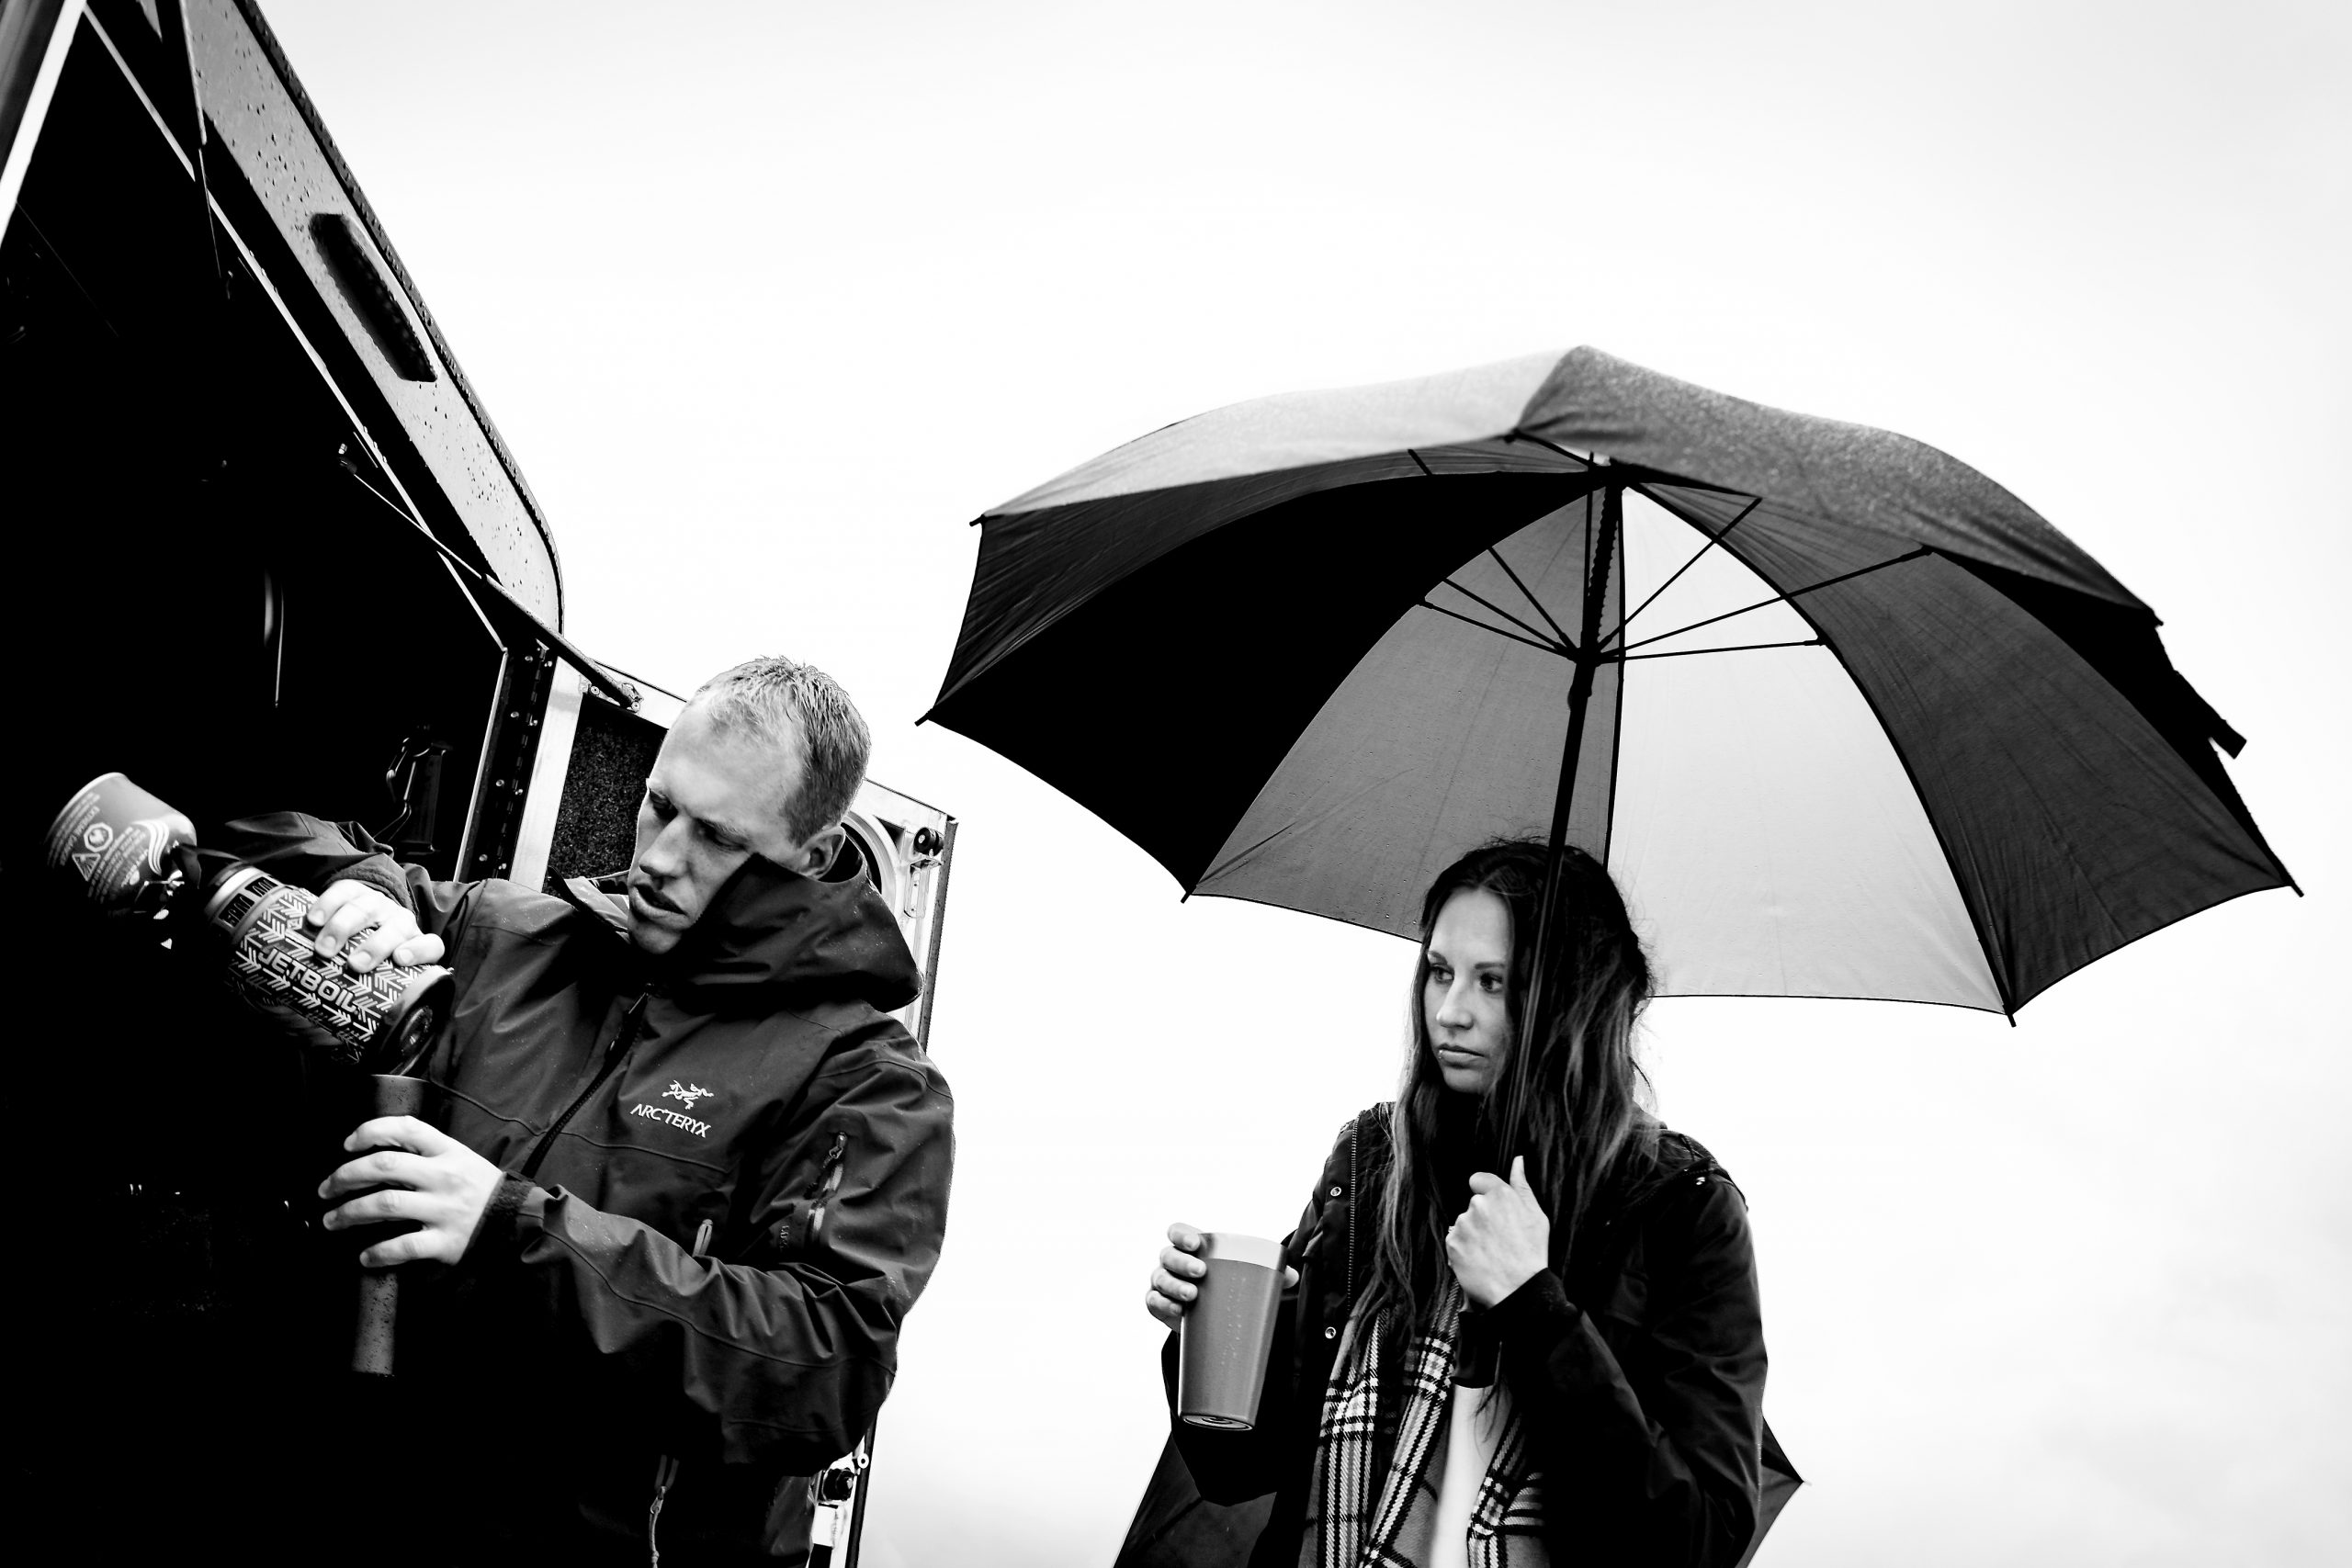 Man pours a coffee while woman stands next to him under an umbrella